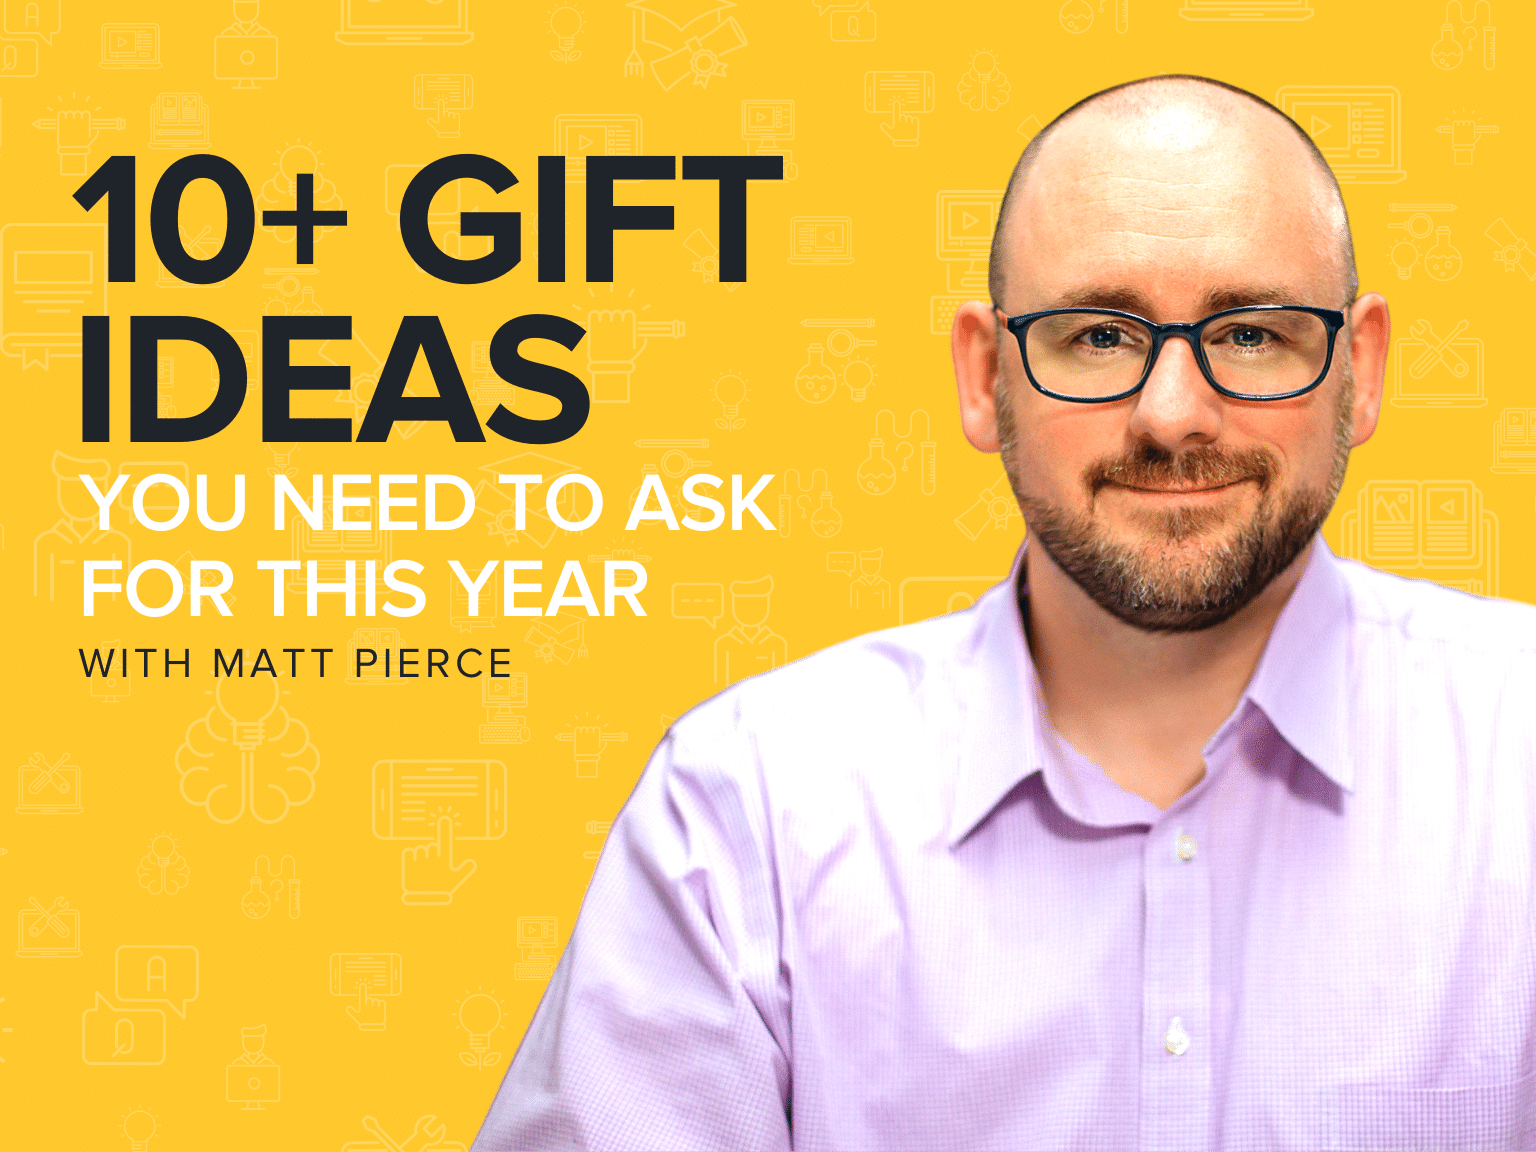 10+ Gift Ideas You Need to Ask For This Year